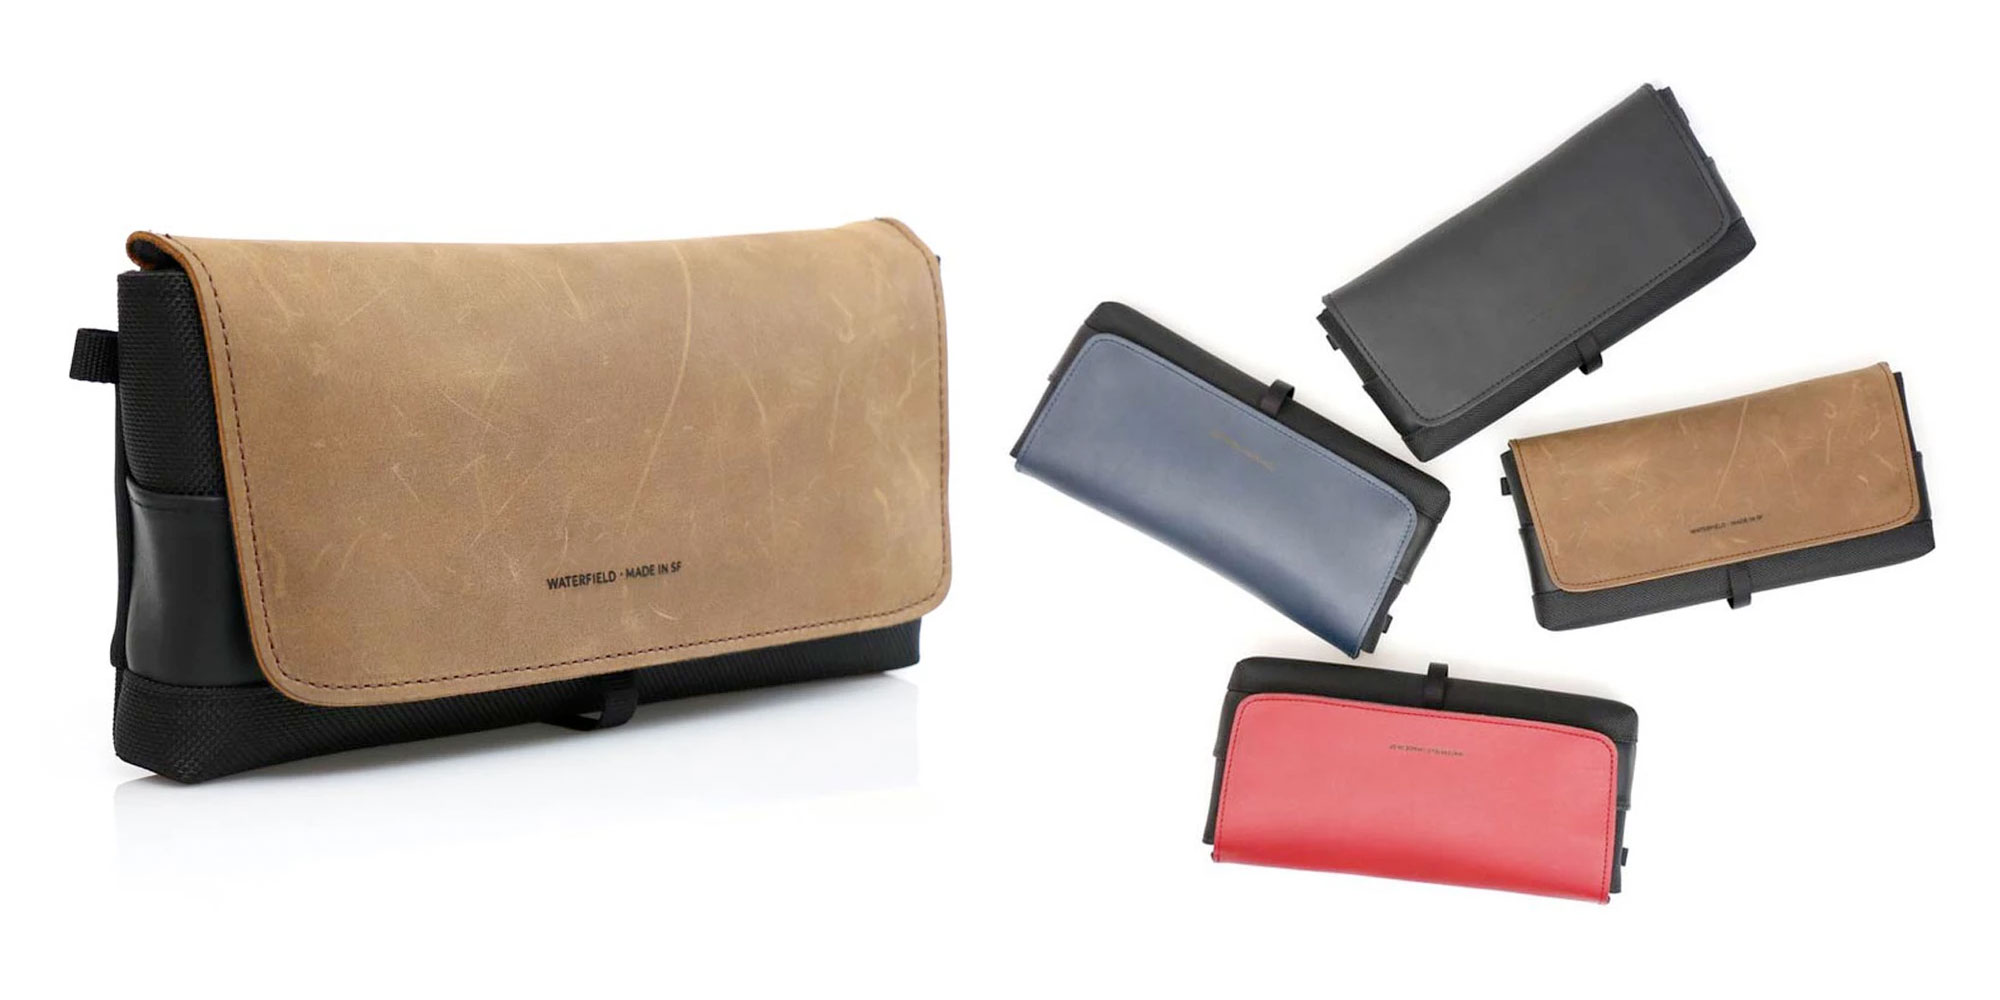 waterfield designs cityslicker nintendo switch lite